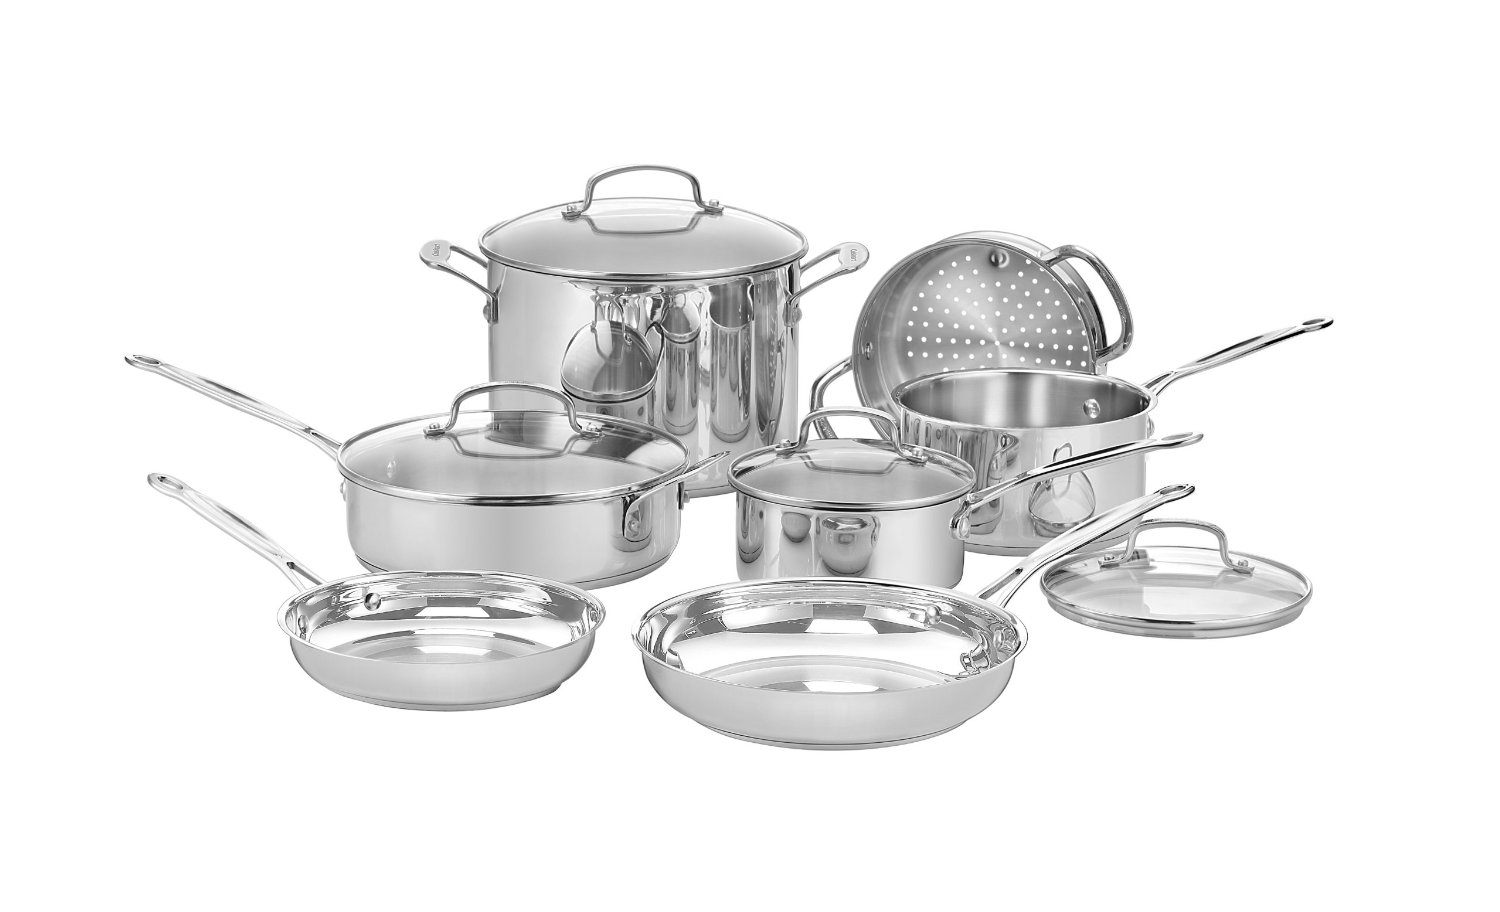 Cuisinart Stainless Steel Cookware Set.jpg